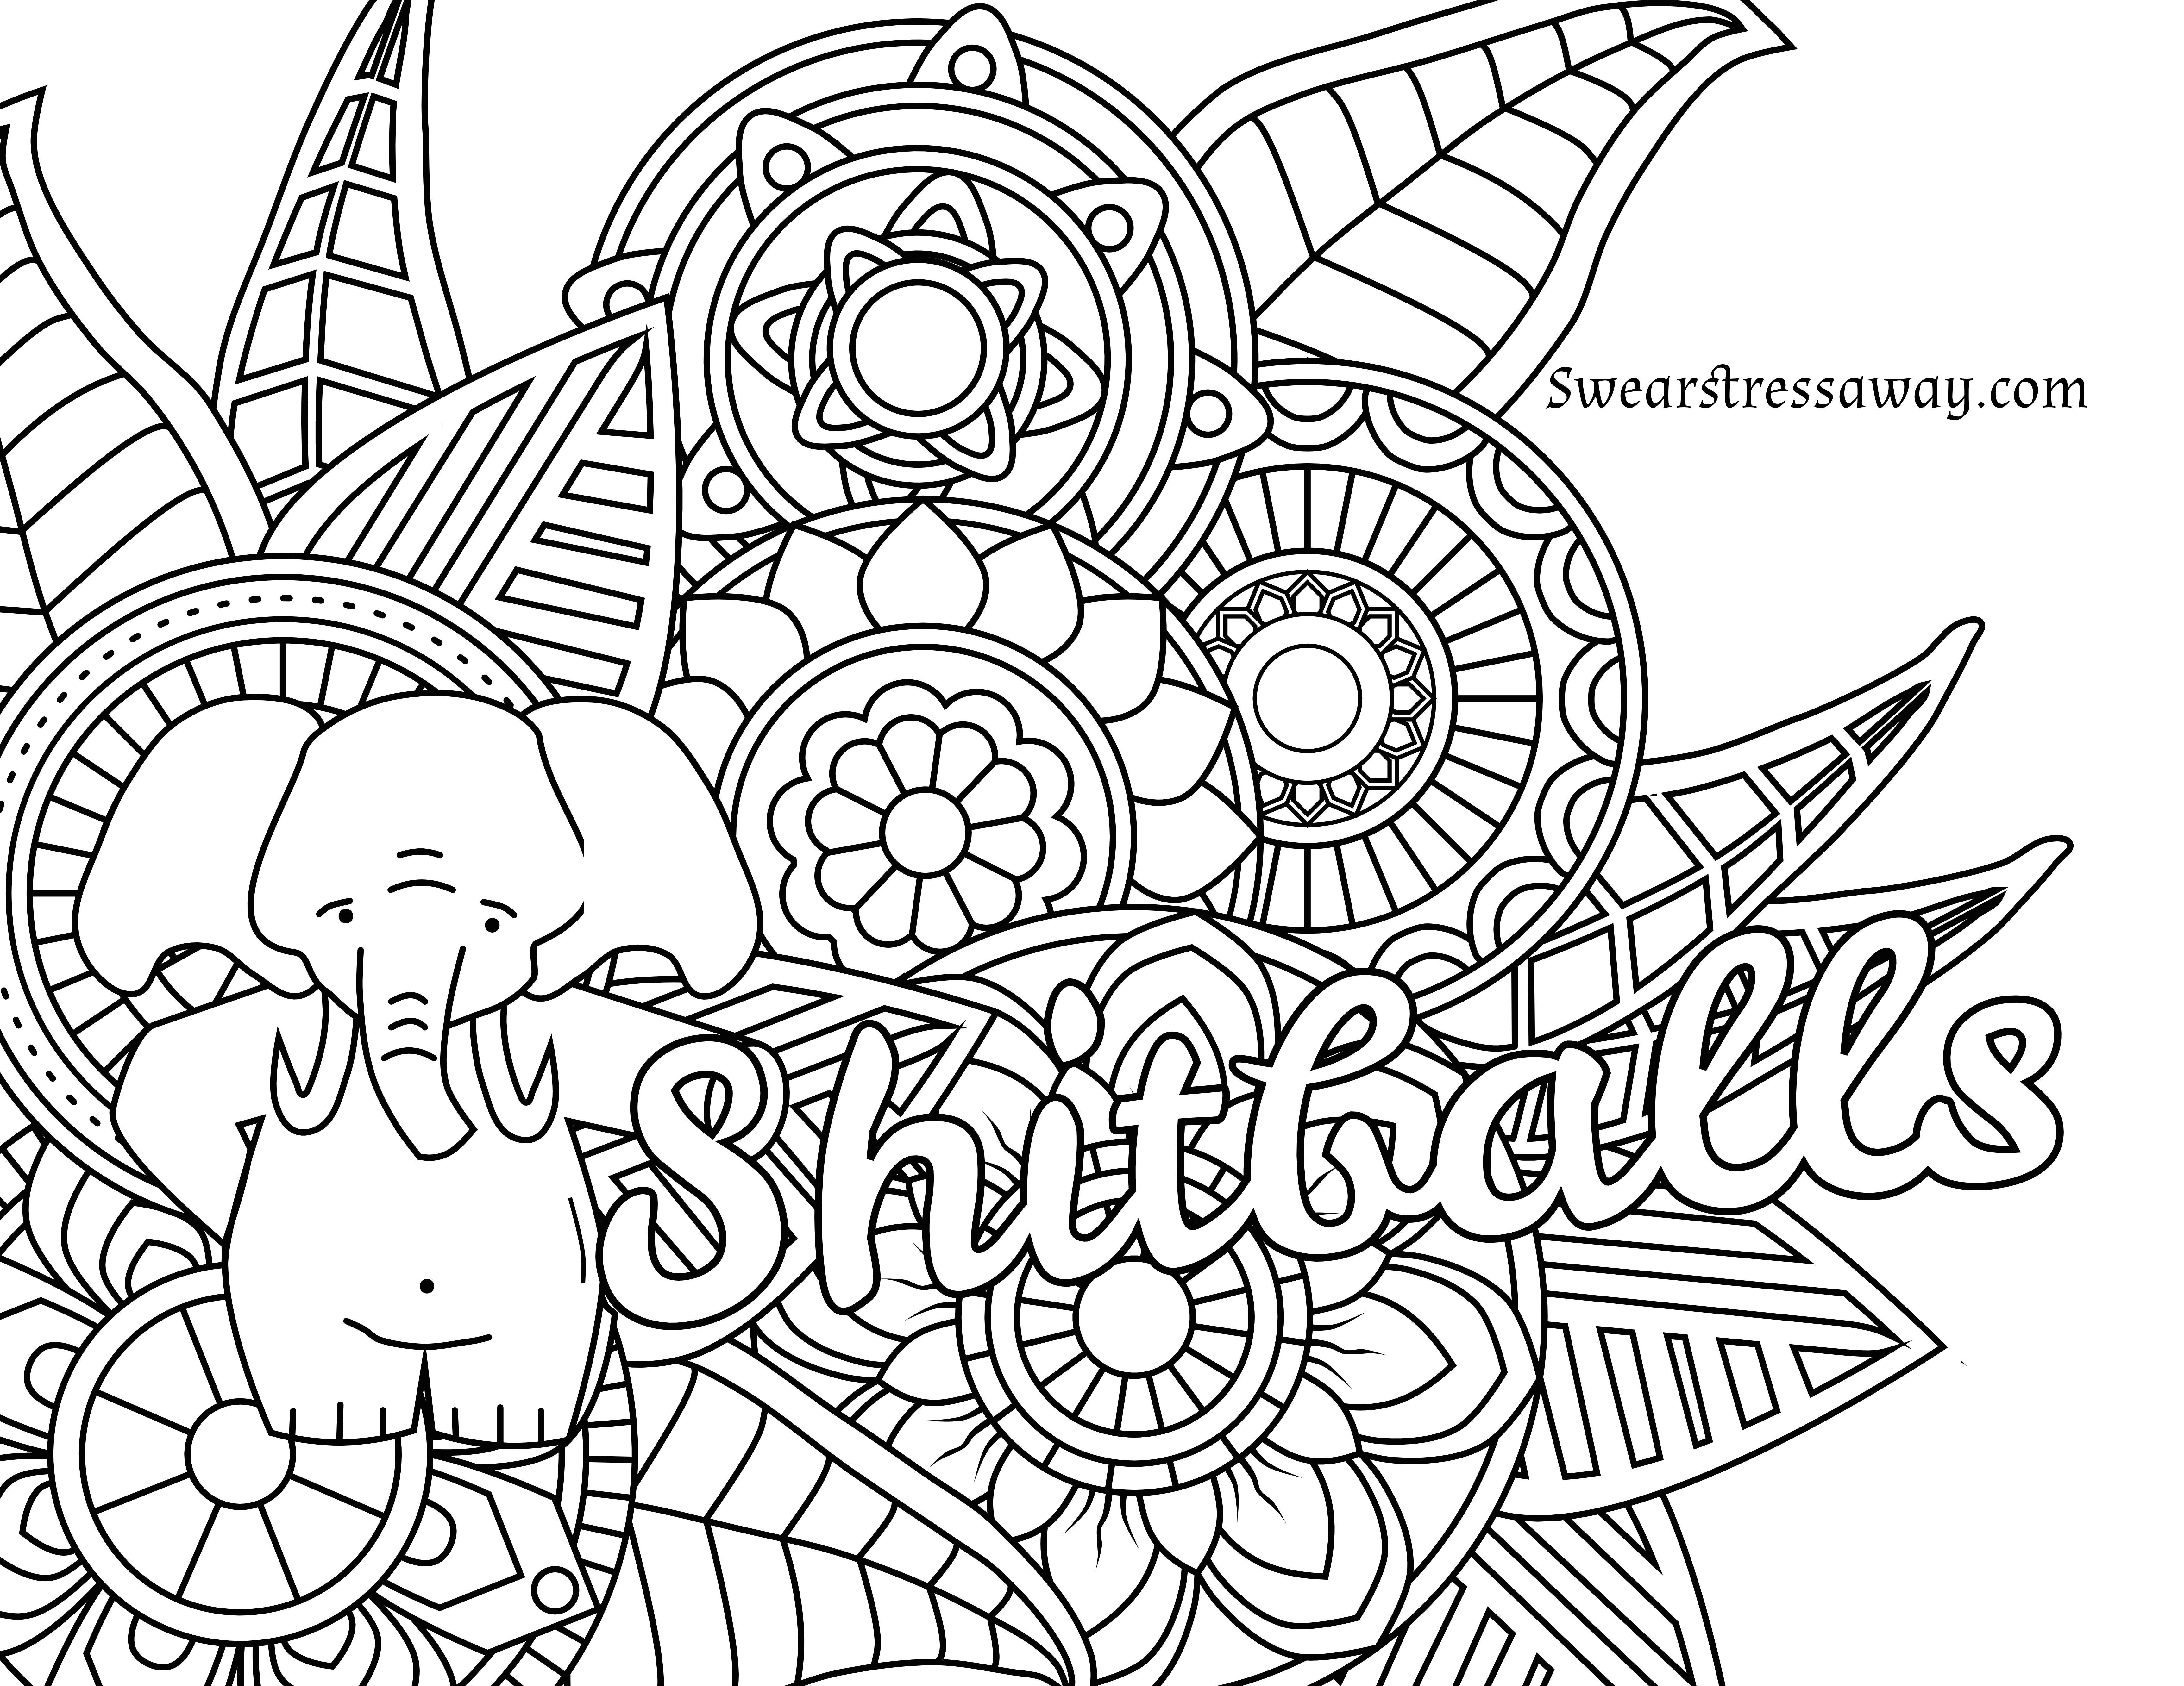 quiver coloring sheets quiver coloring pages free at getcoloringscom free sheets coloring quiver 1 1